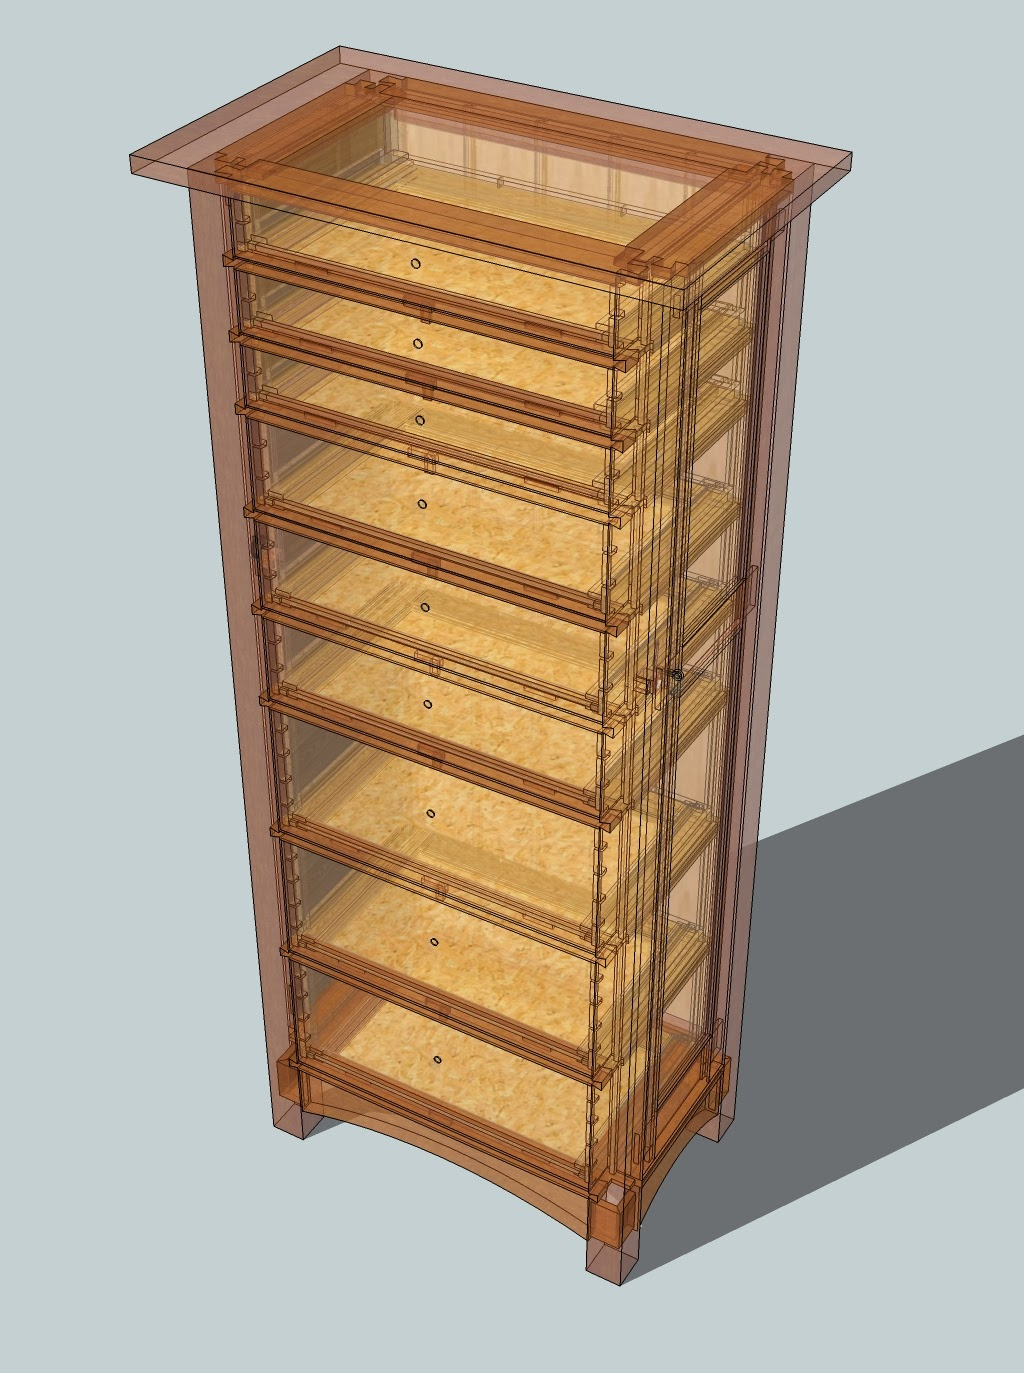 Honey do woodworking jewelry lingerie chest project begins for Lingerie and jewelry chest